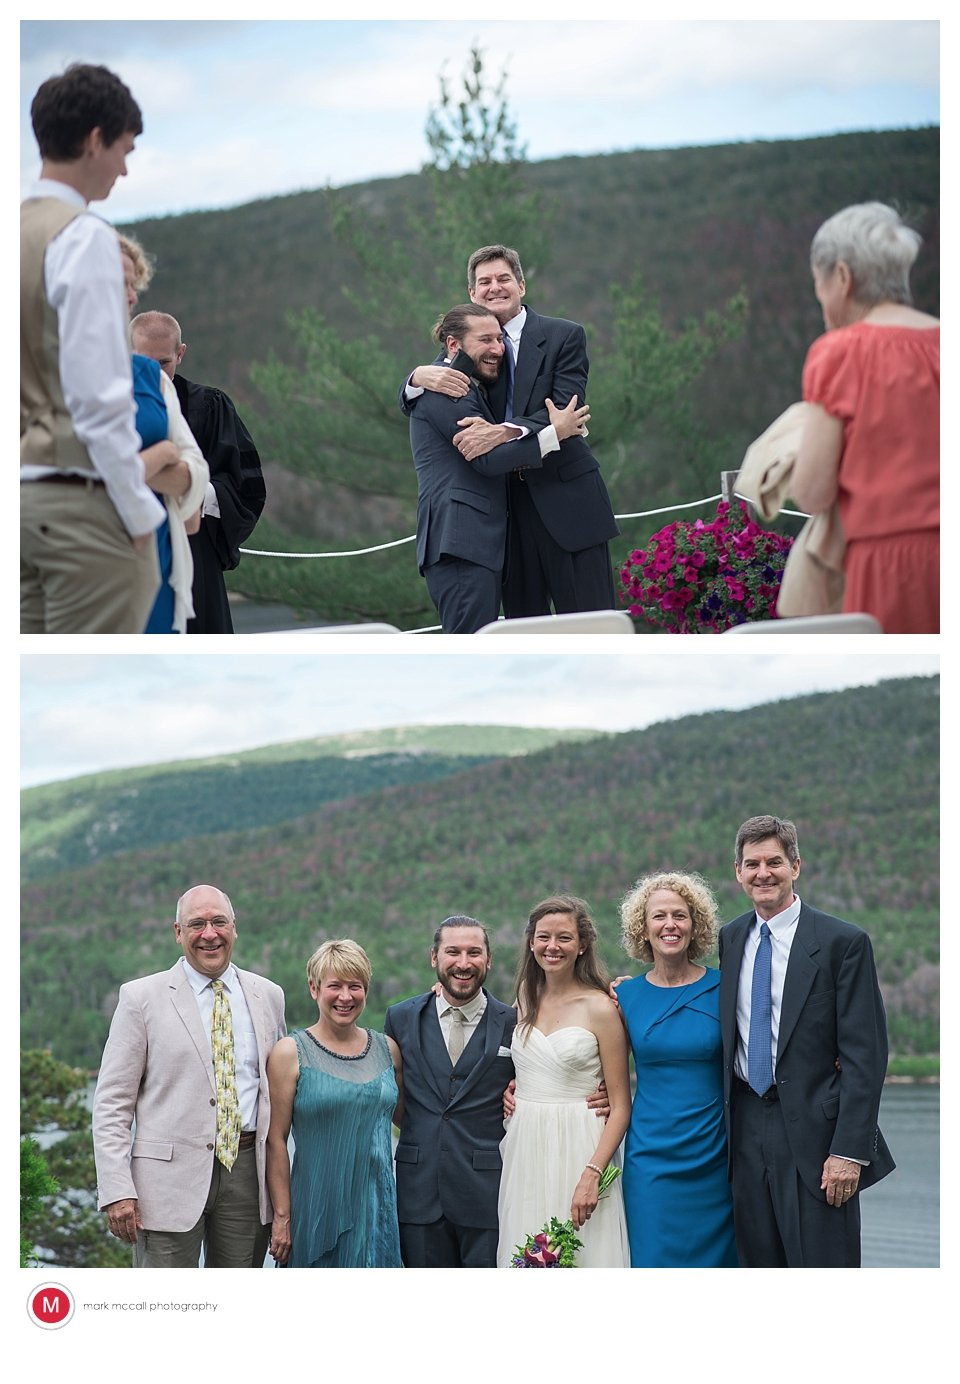 Mt nathan wedding